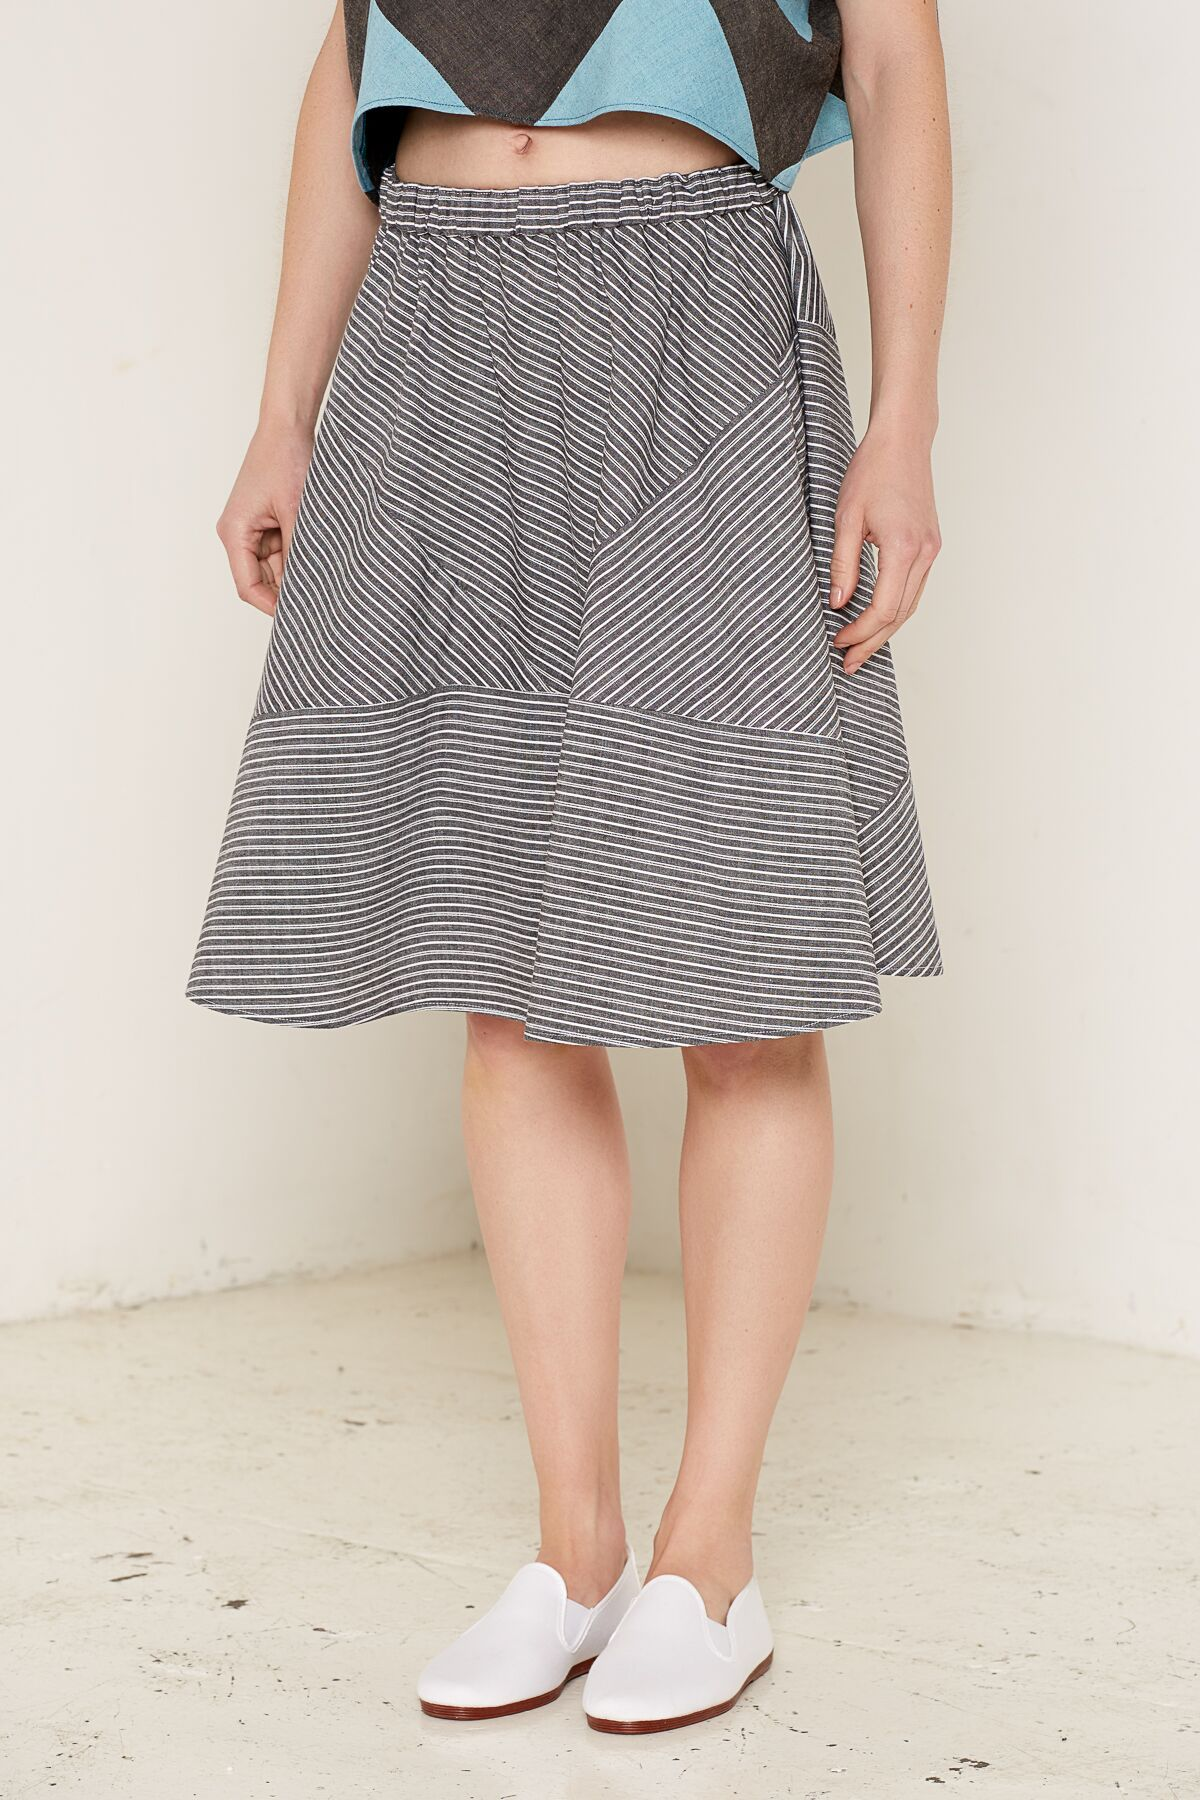 KORE SKIRT - The Clothing LoungeBo Carter